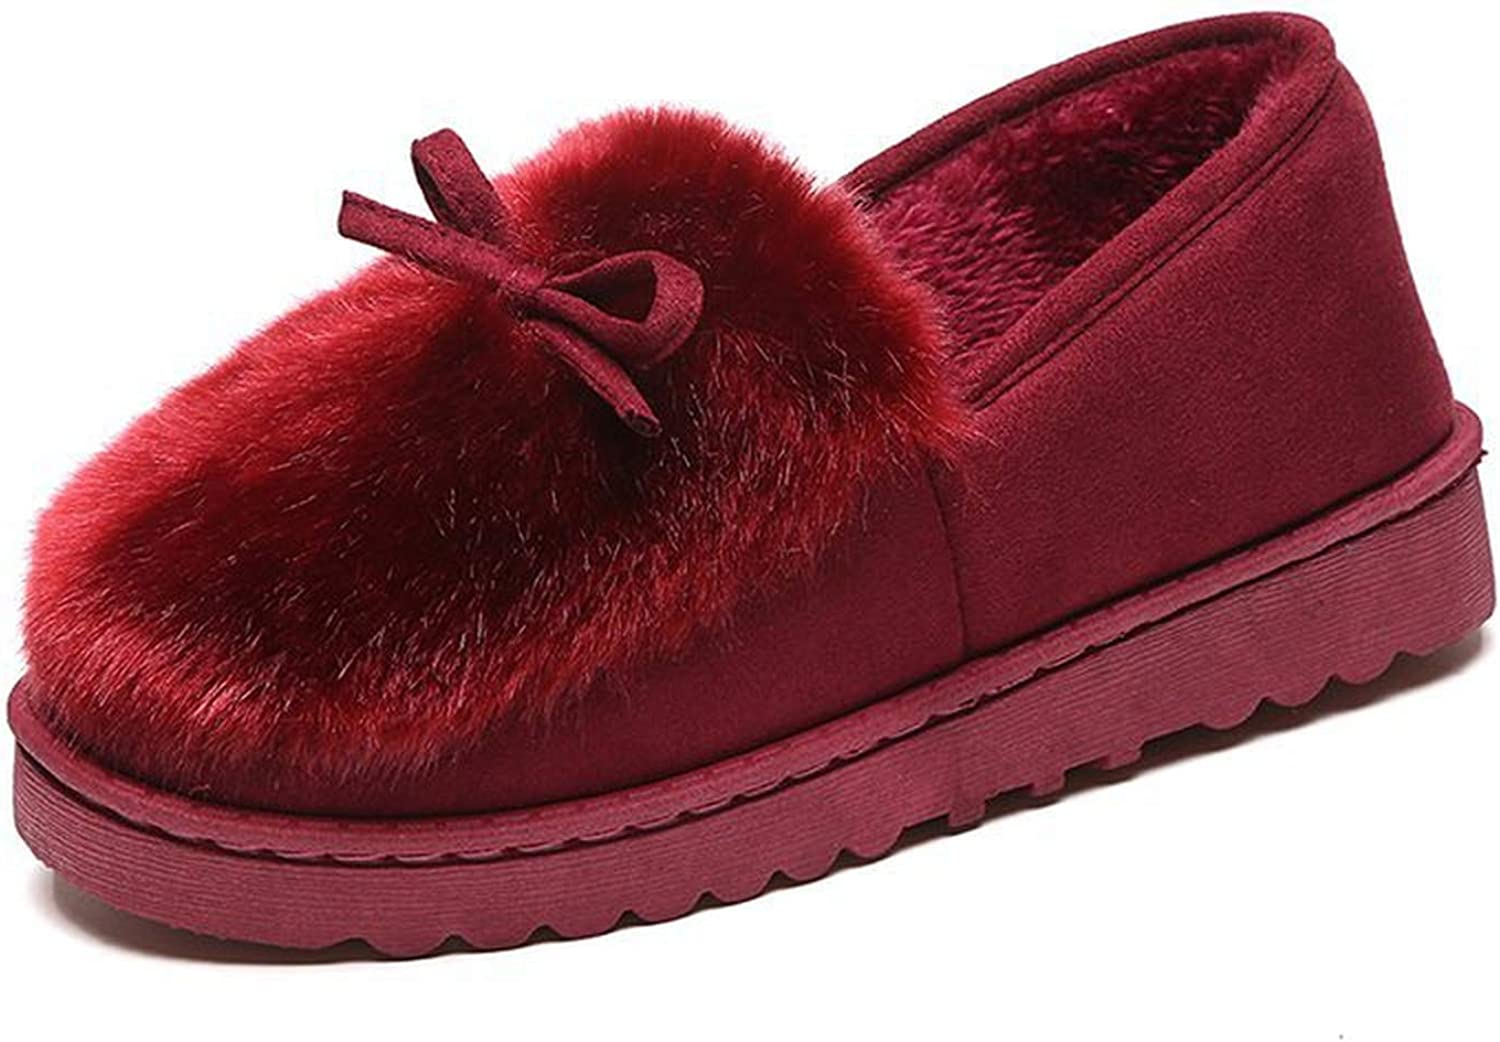 Winter Women Slippers with Fur Home Outdoor Casual Slippers Women Winter shoes tyh78